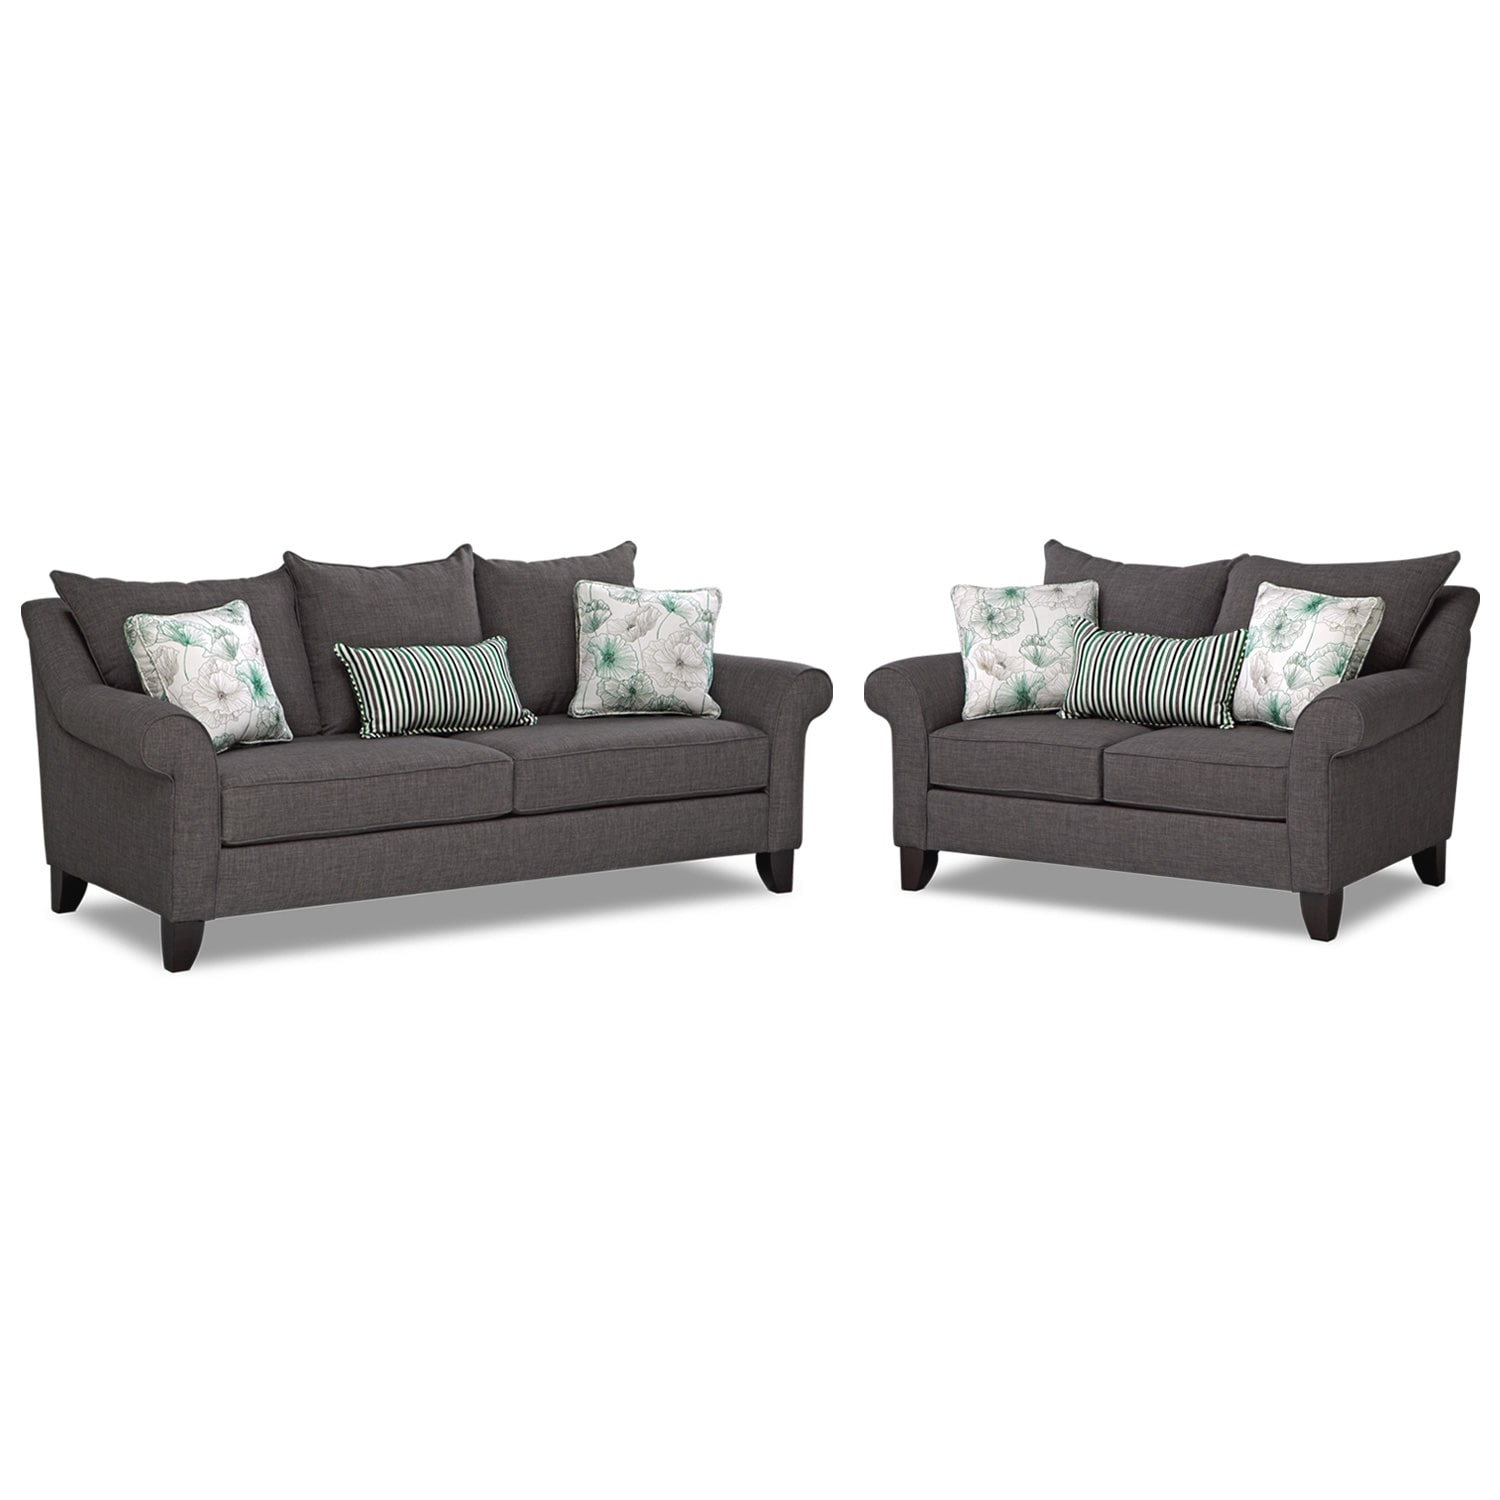 Living Room Furniture - Jasmine 2 Pc. Sleeper Living Room with Memory Foam Mattress - Charcoal